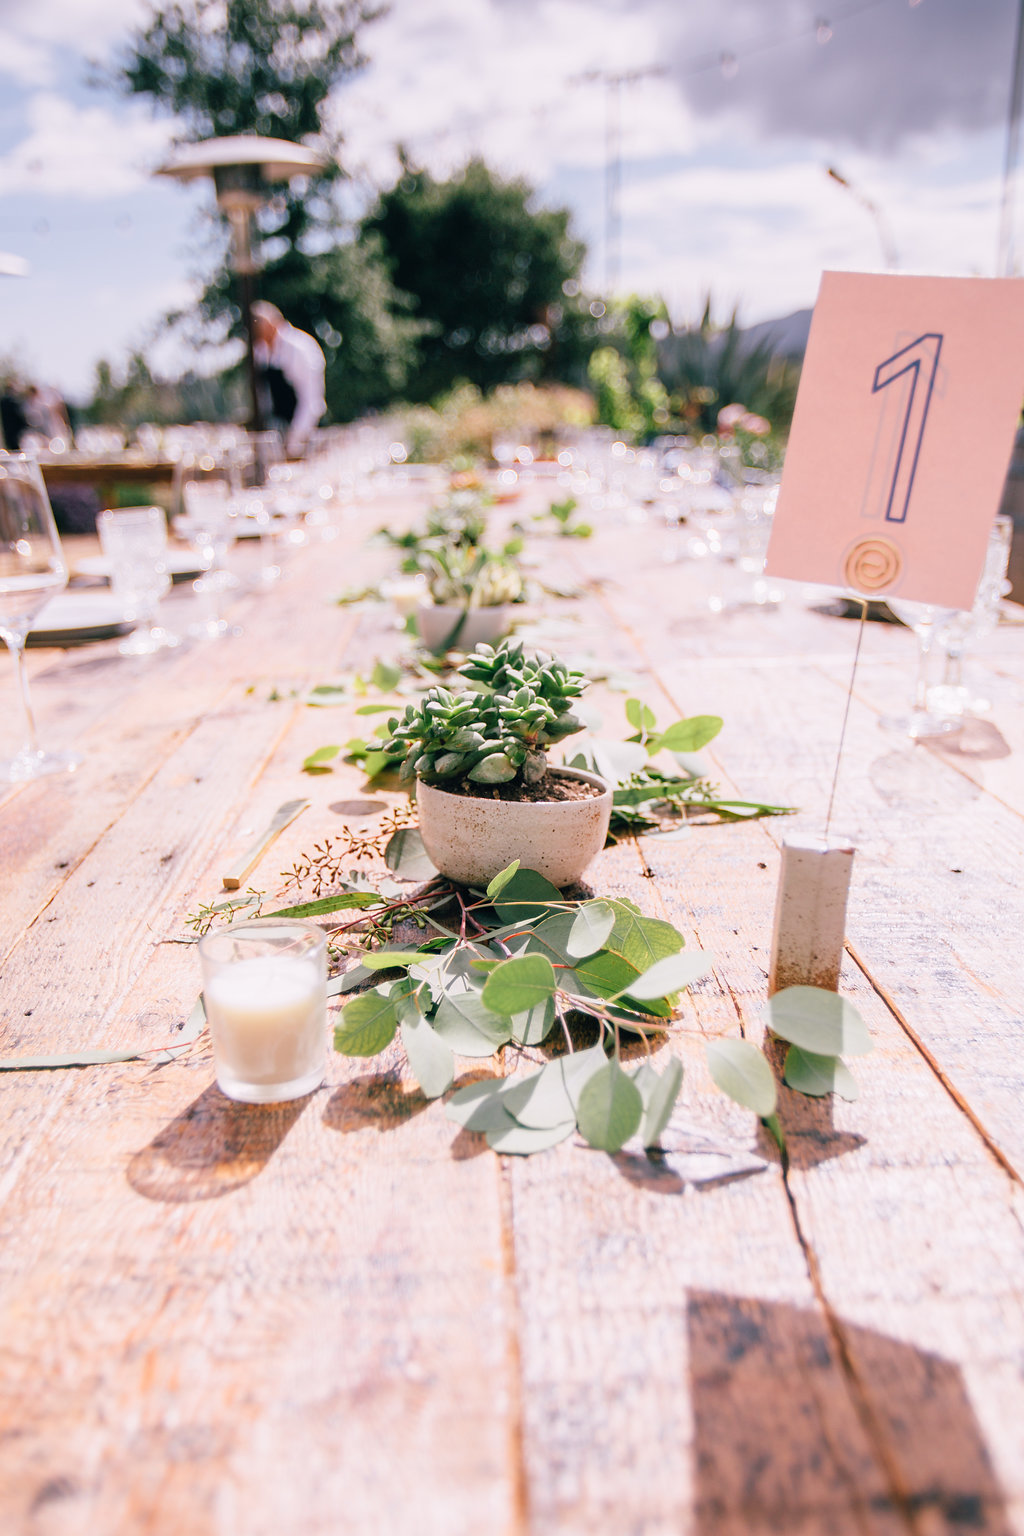 desert wedding reception table settings with eucalyptus garland and succulent centerpieces in Ojai